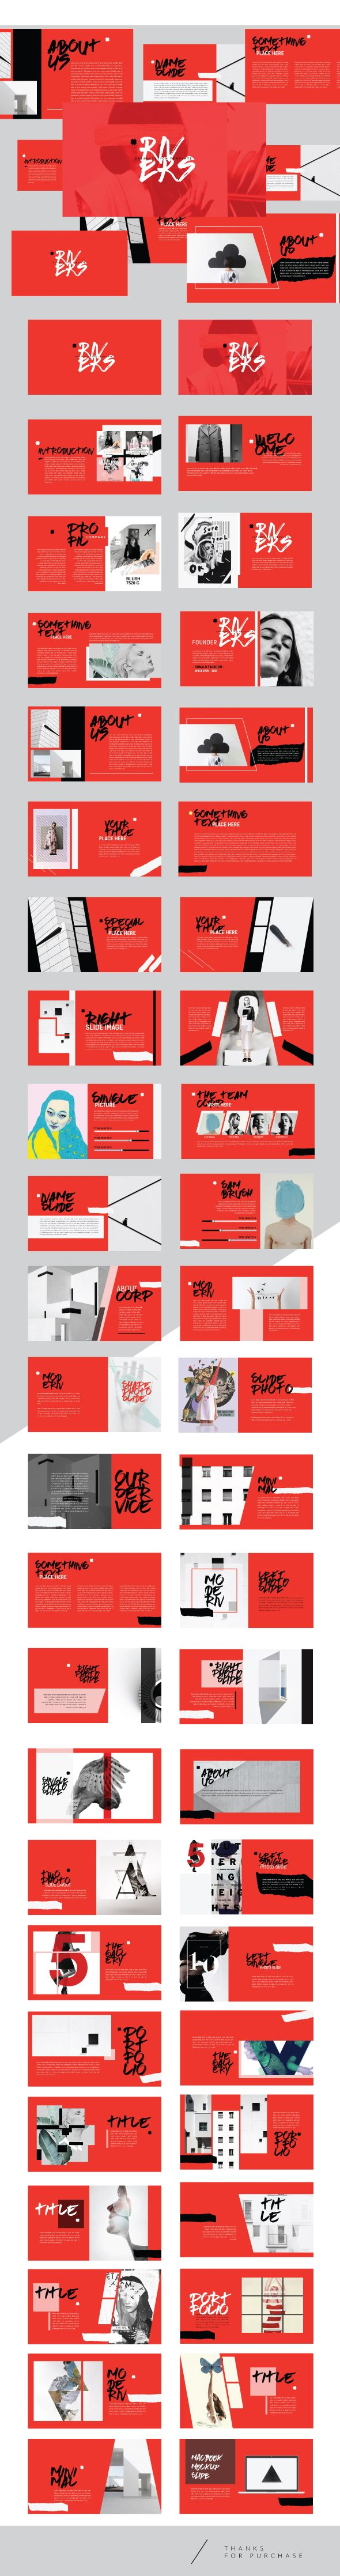 Rivers -  Multipurpose powerpoint template